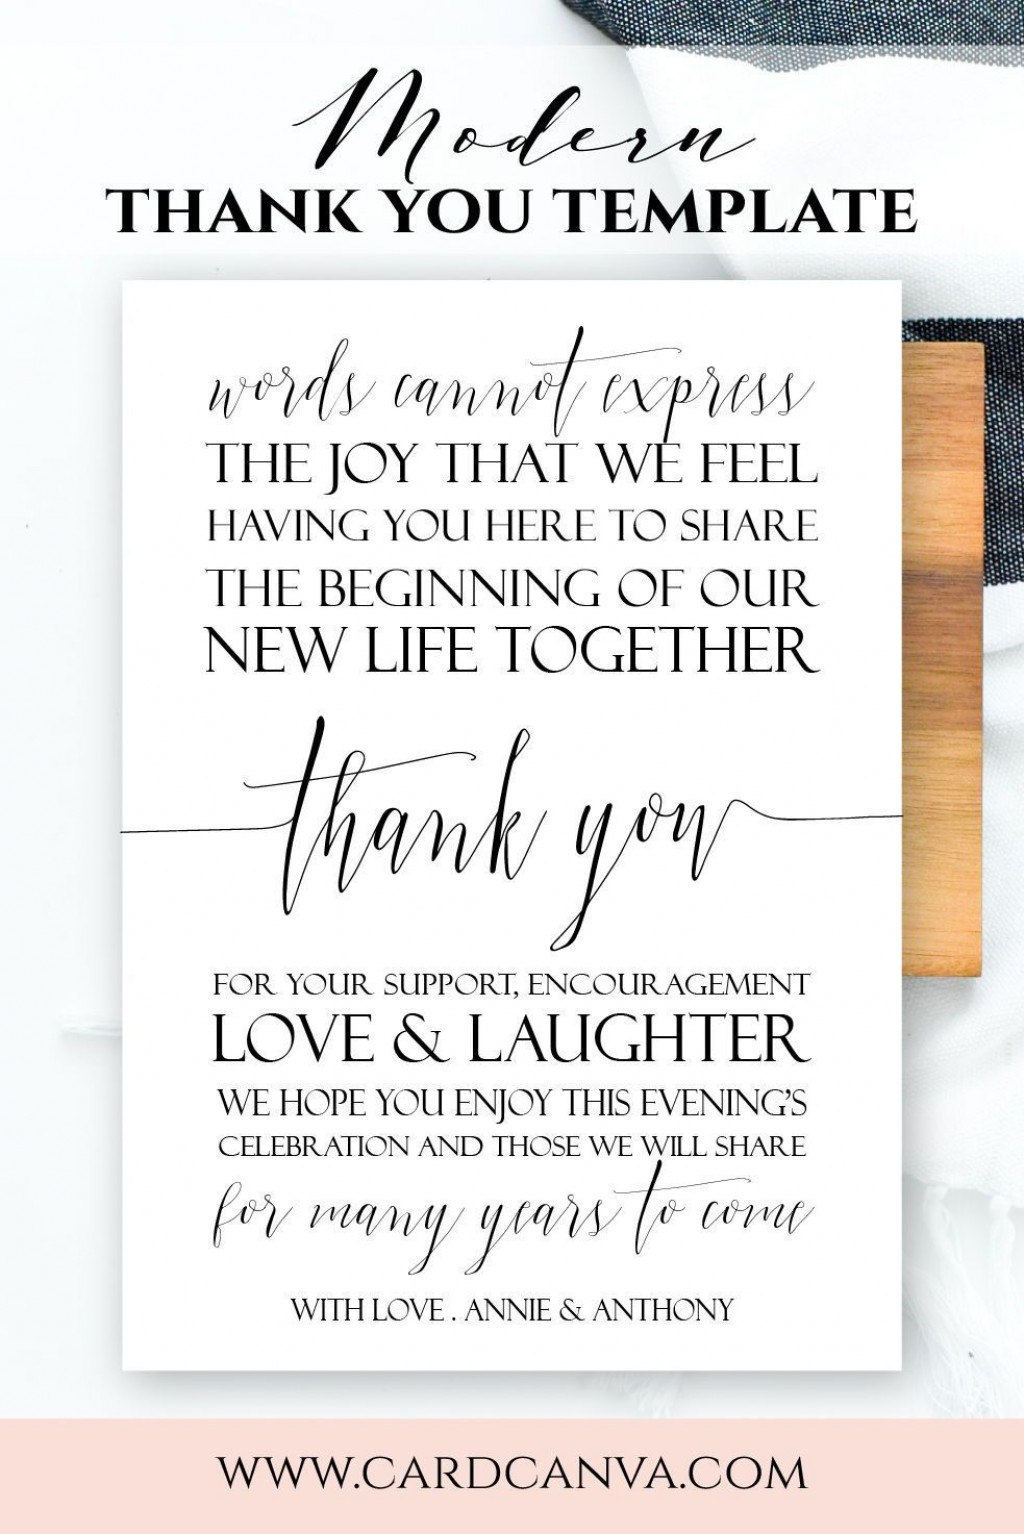 000 Singular Thank You Note Letter Template Word High Def Large